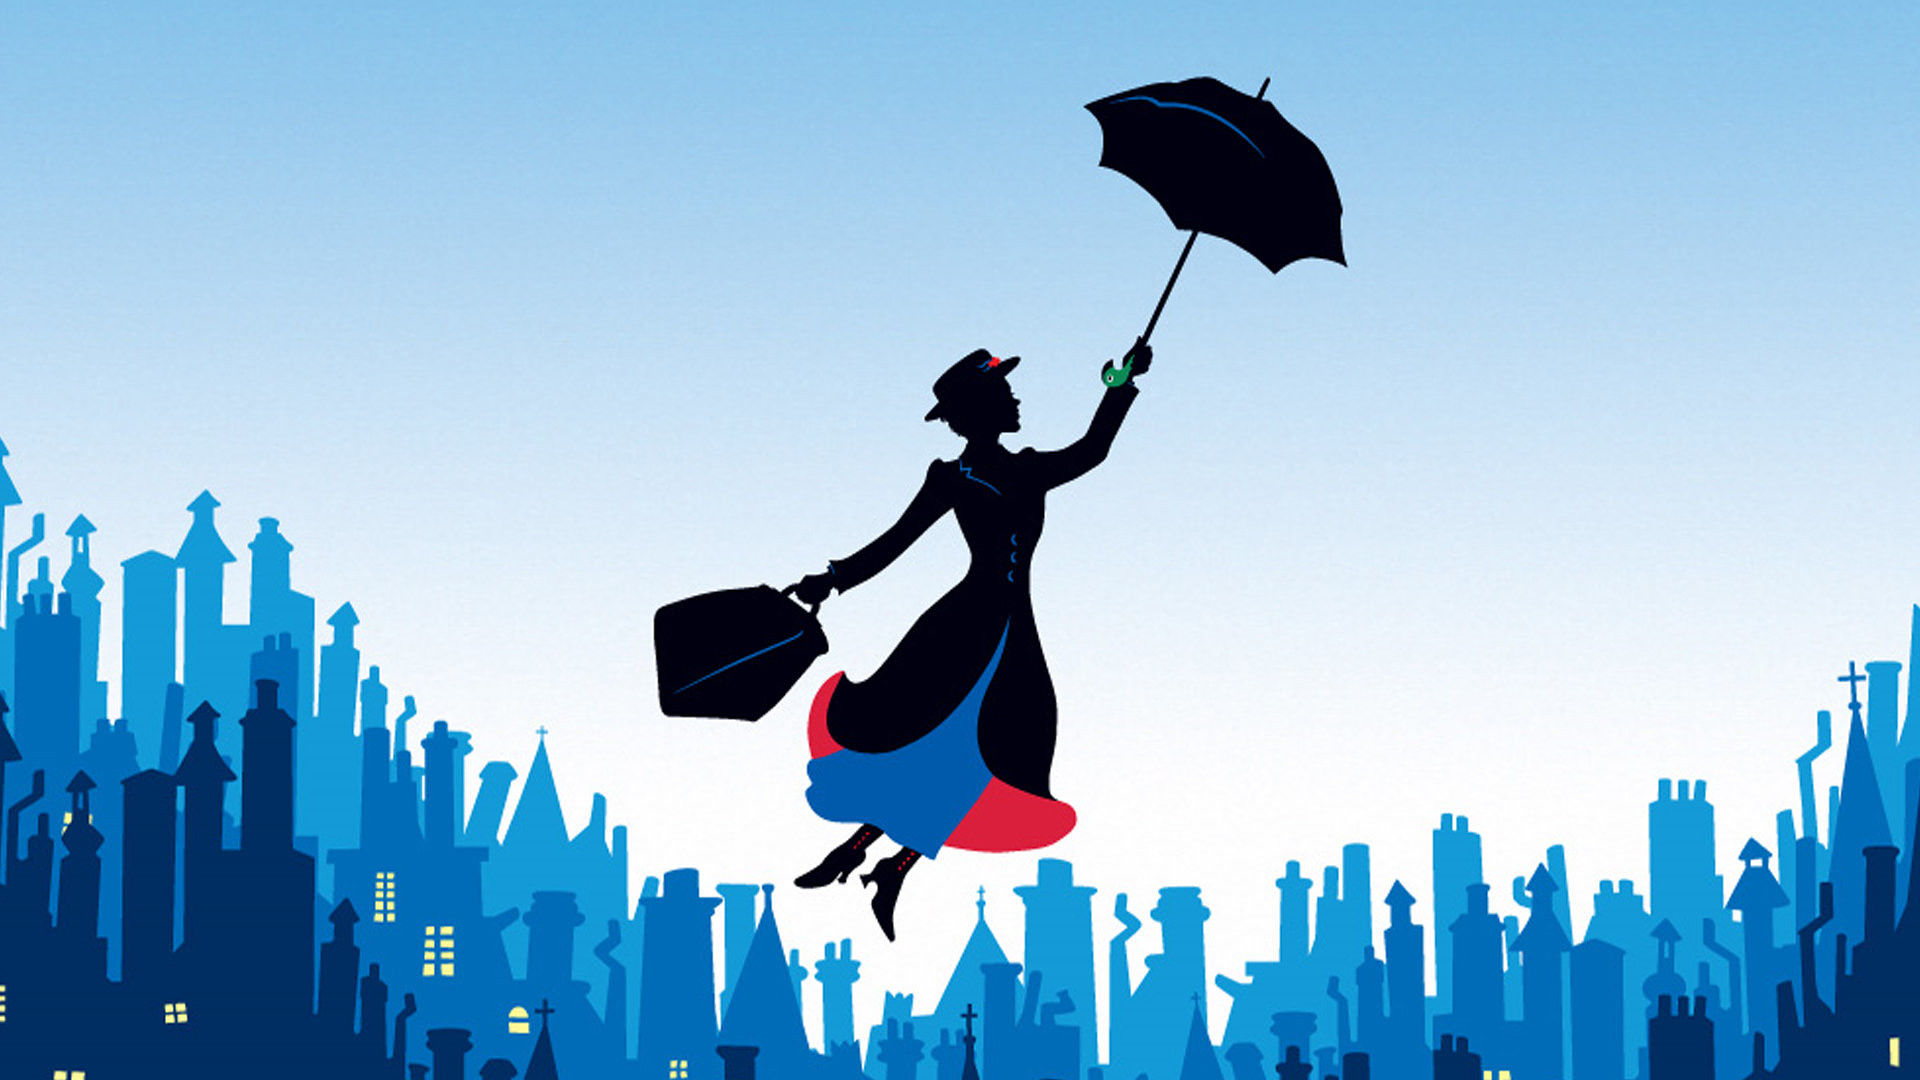 disney is making a new mary poppins movie here s why this is a good thing 615822